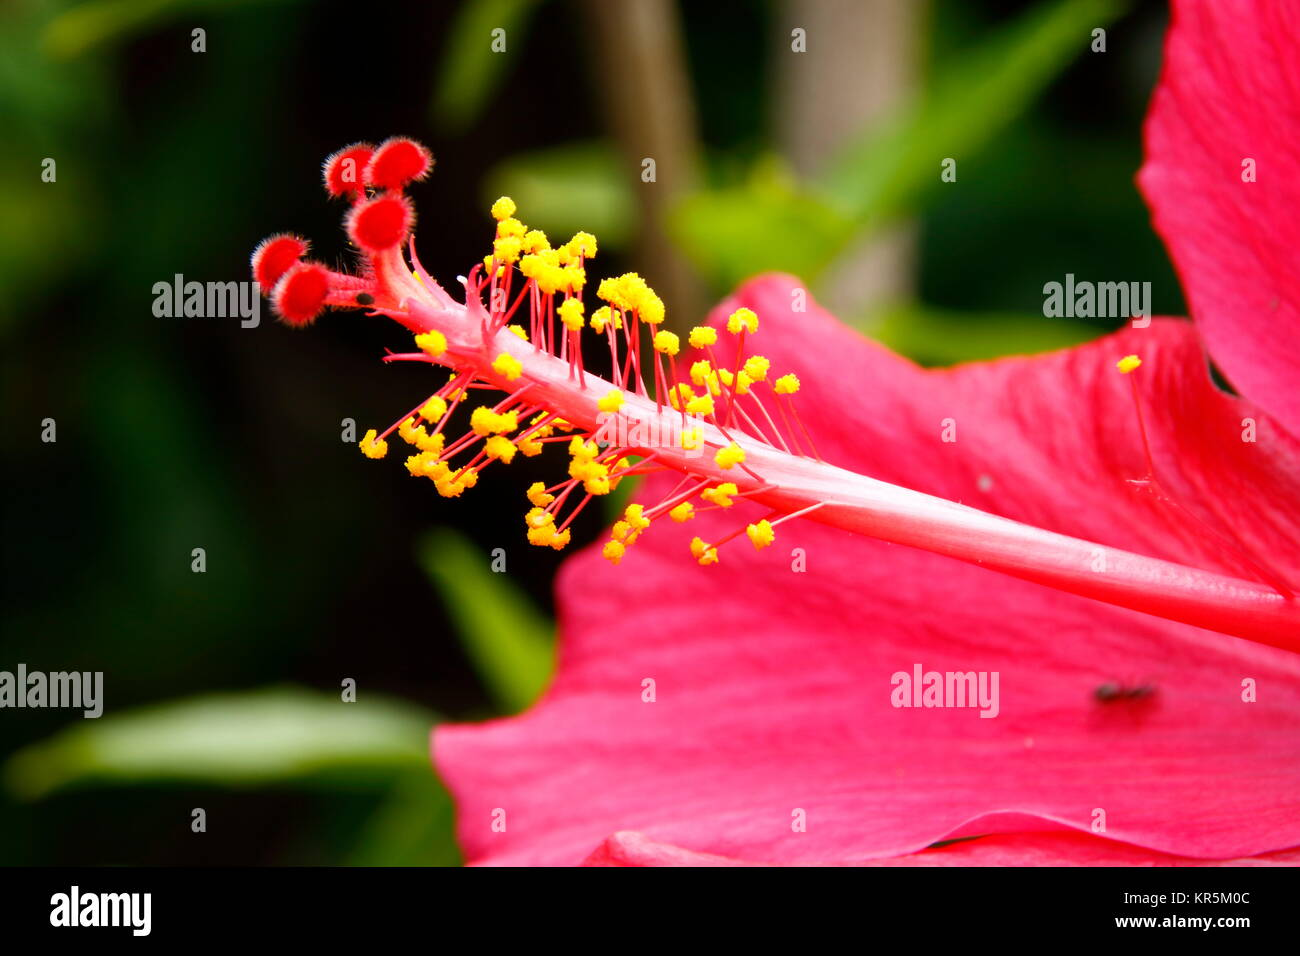 stamp and flower of a hibiscus flower Stock Photo